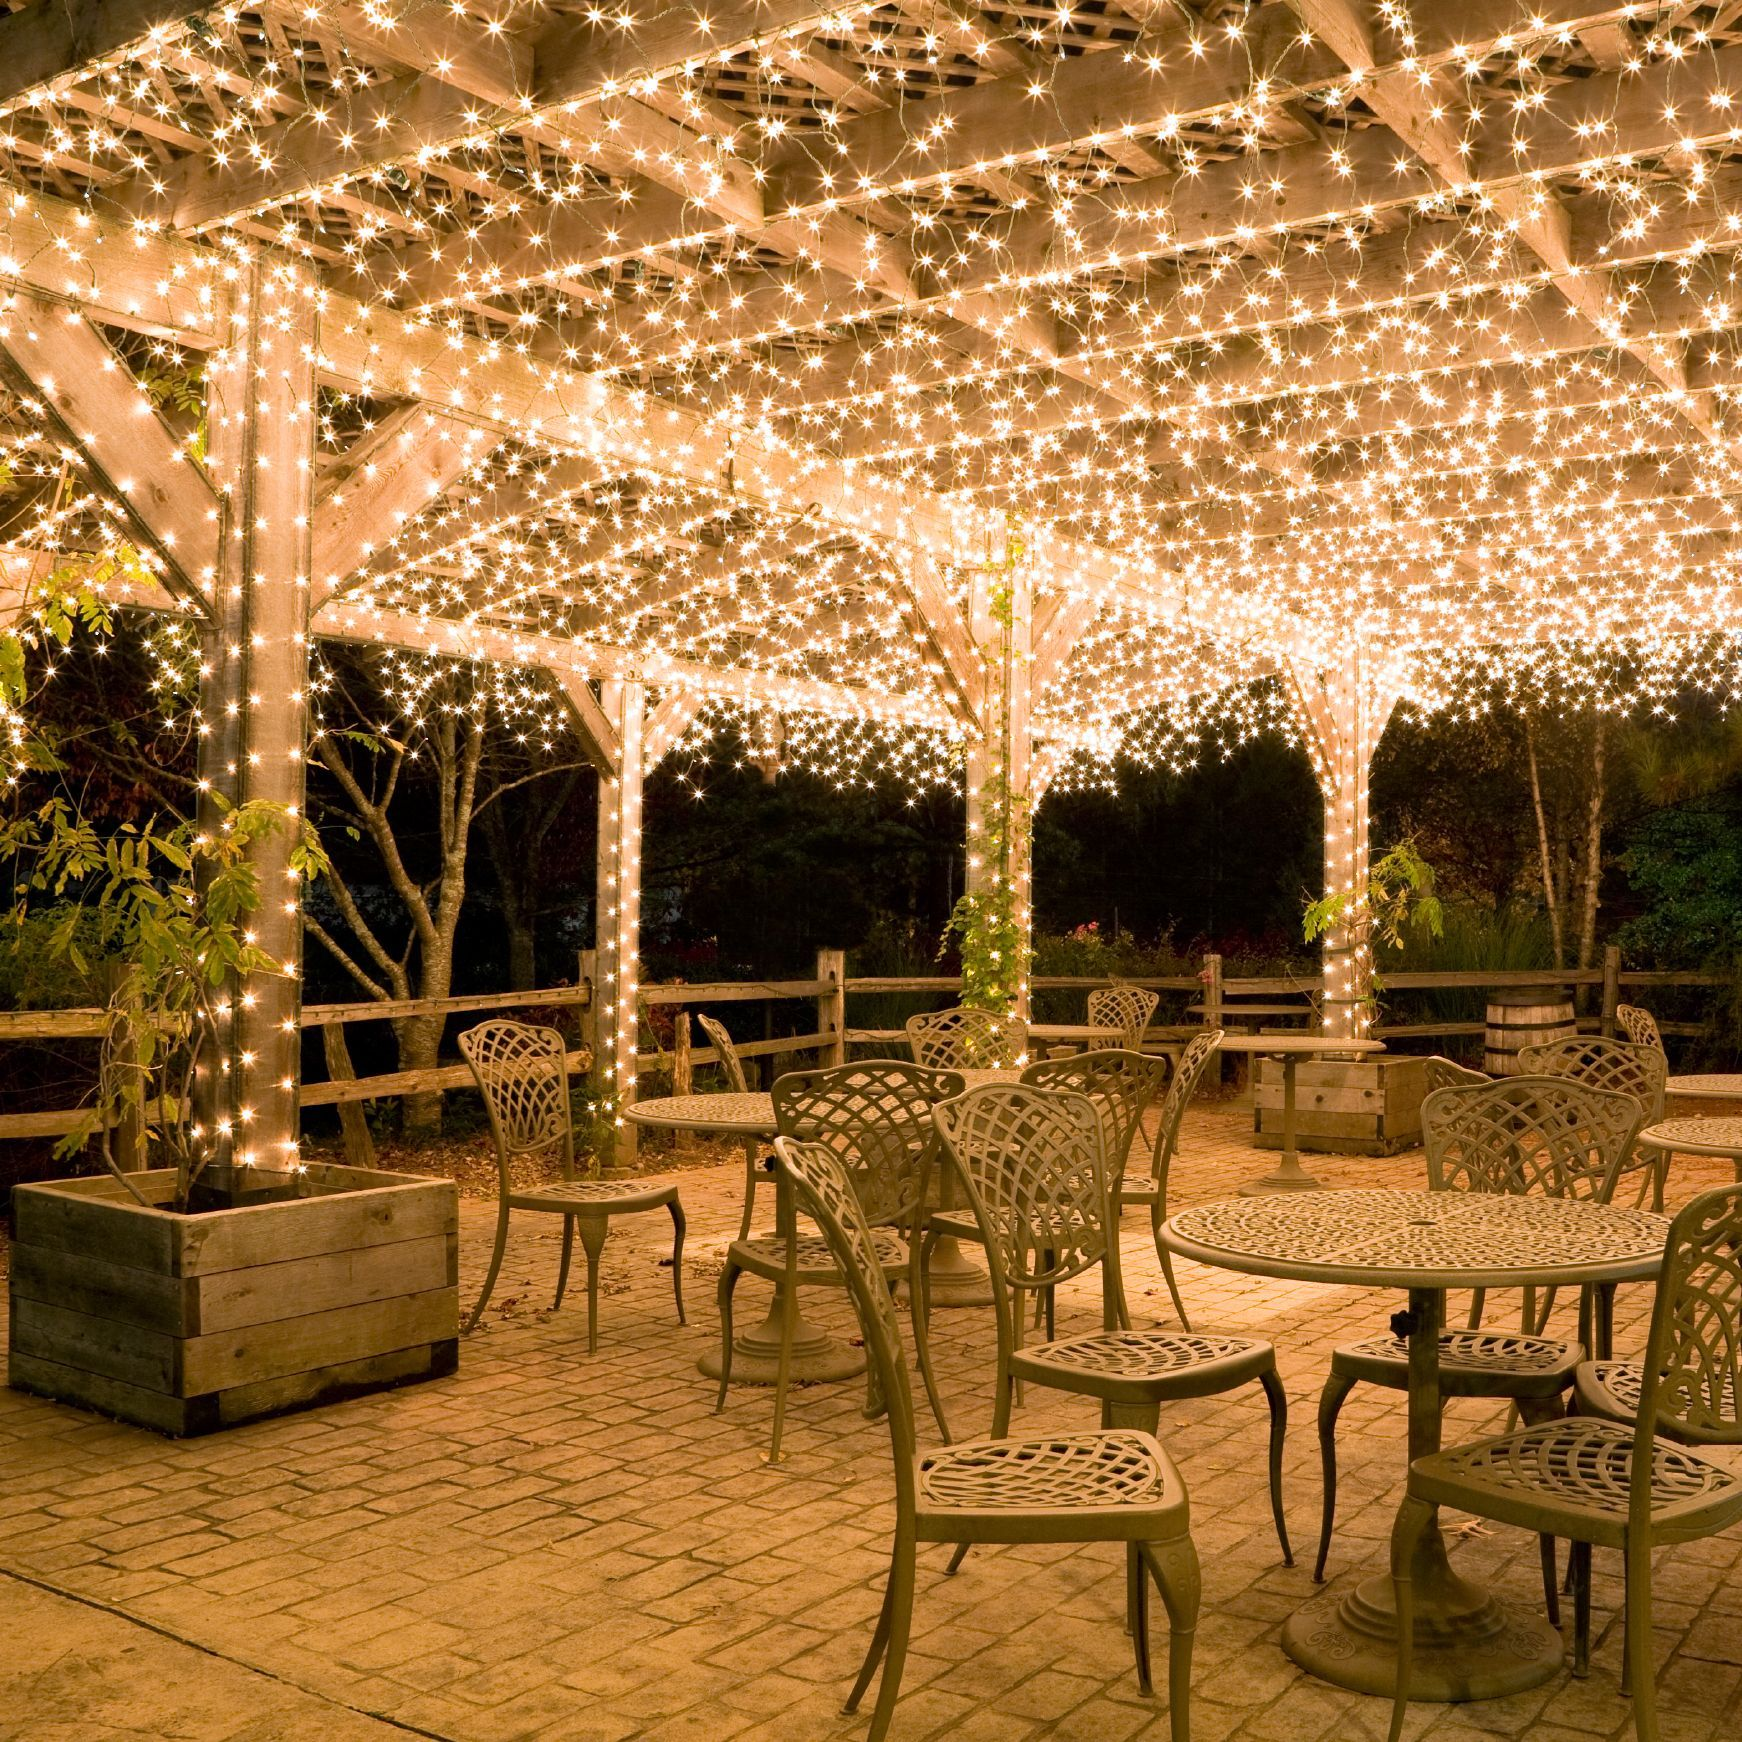 Hang white icicle lights to create magical outdoor lighting this hang white icicle lights to create magical outdoor lighting this idea works well for decks aloadofball Image collections